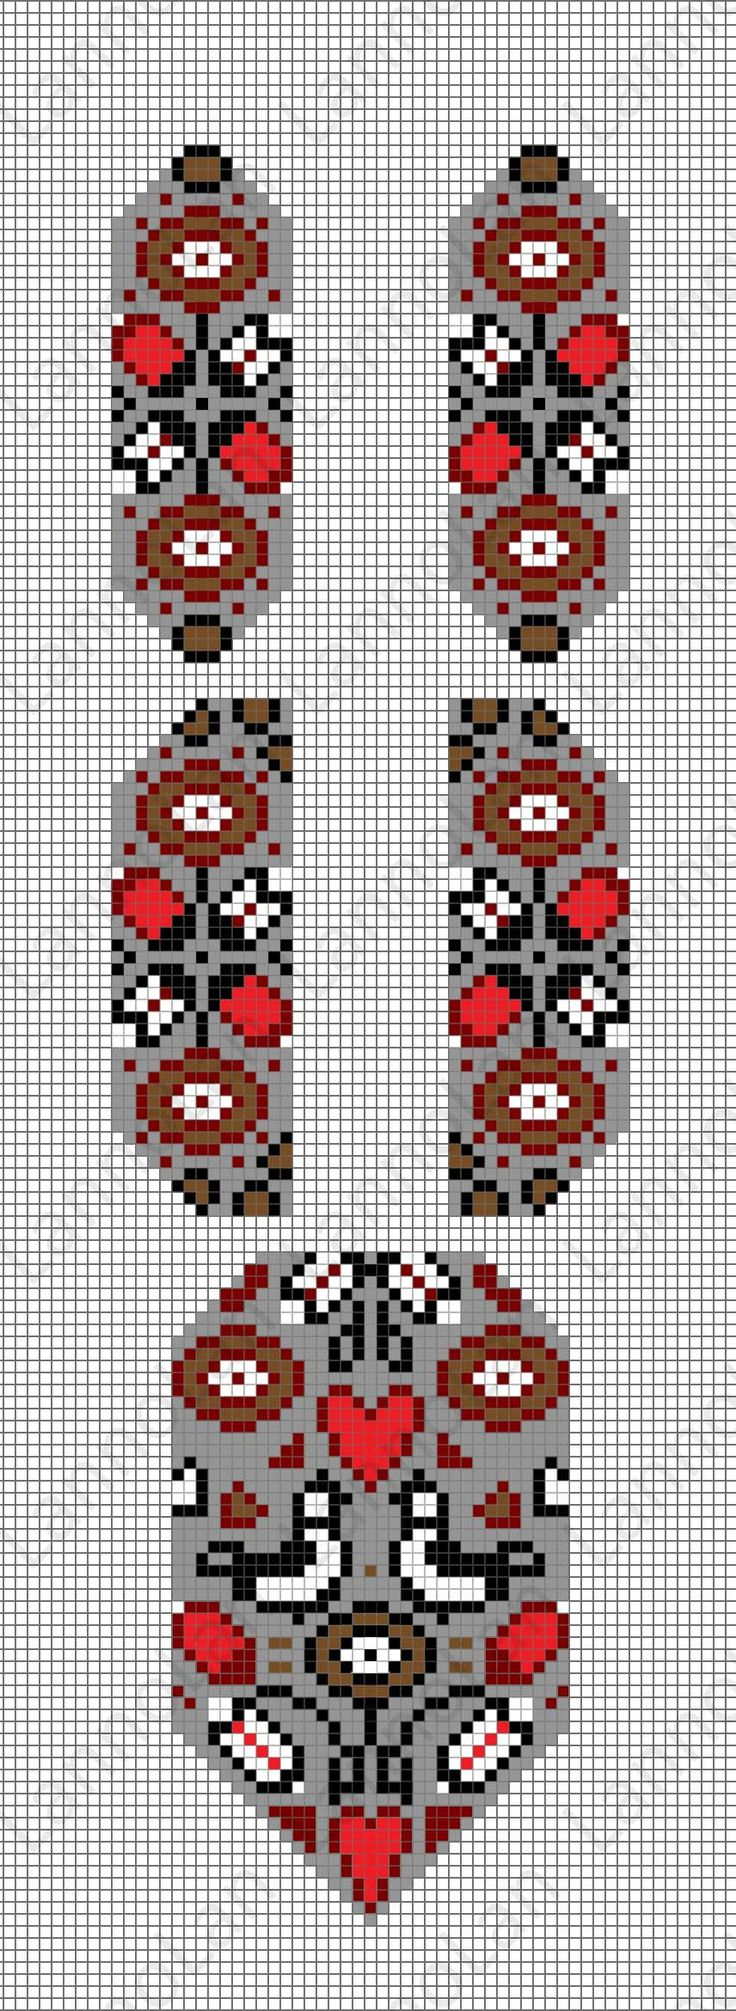 Ukrainian gerdan pattern - loom pattern - necklace ... inspired by: http://skrynya.ua/neck/neck-ethno/p676228